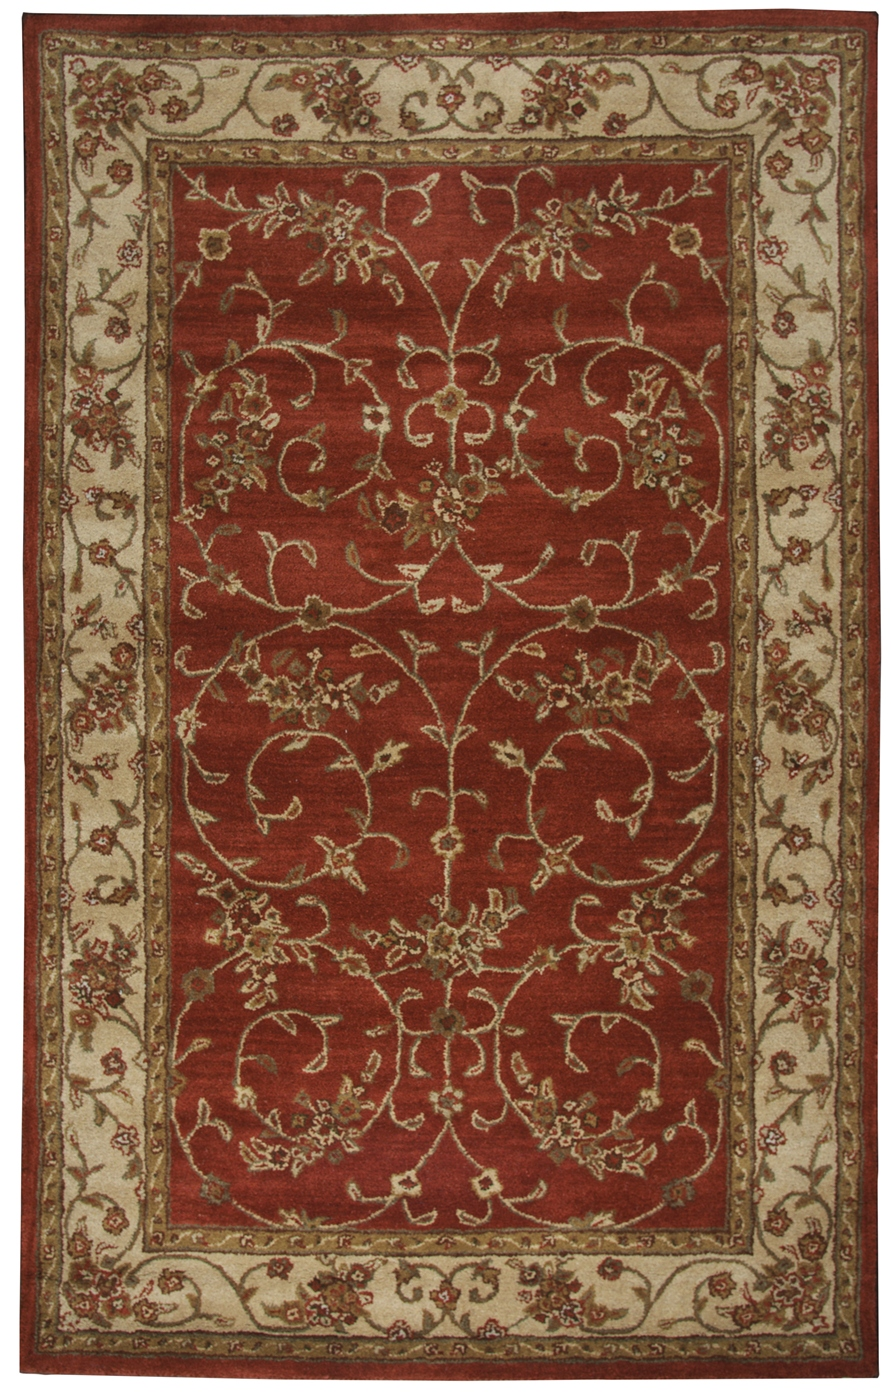 Craft Traditional Hand Tufted Wool Area Rug In Red Ivory